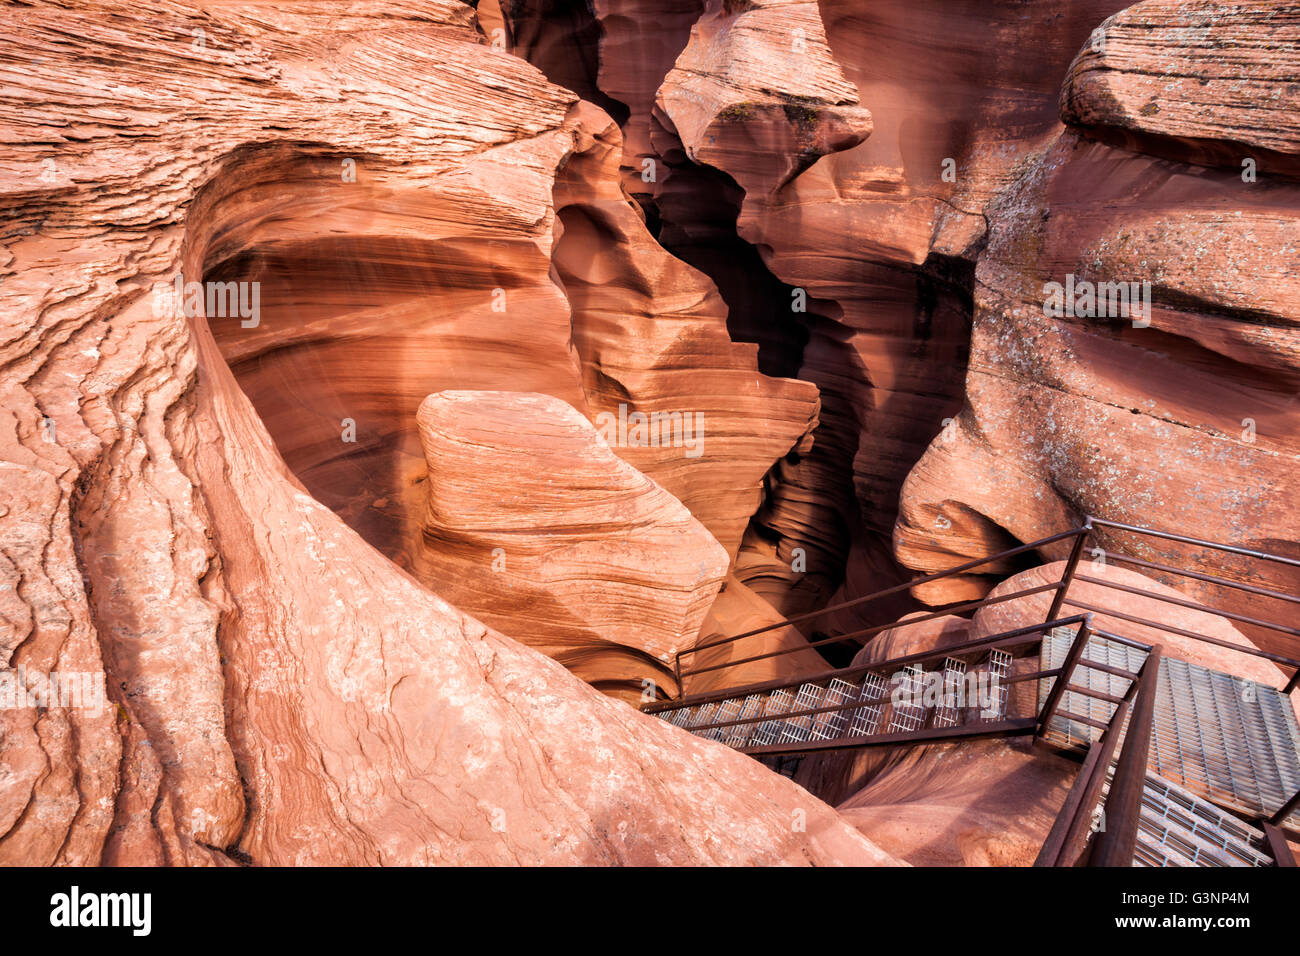 Metal staircase leading down into unusual sandstone rock formations inside the Lower Antelope Canyon, Page, Arizona, - Stock Image